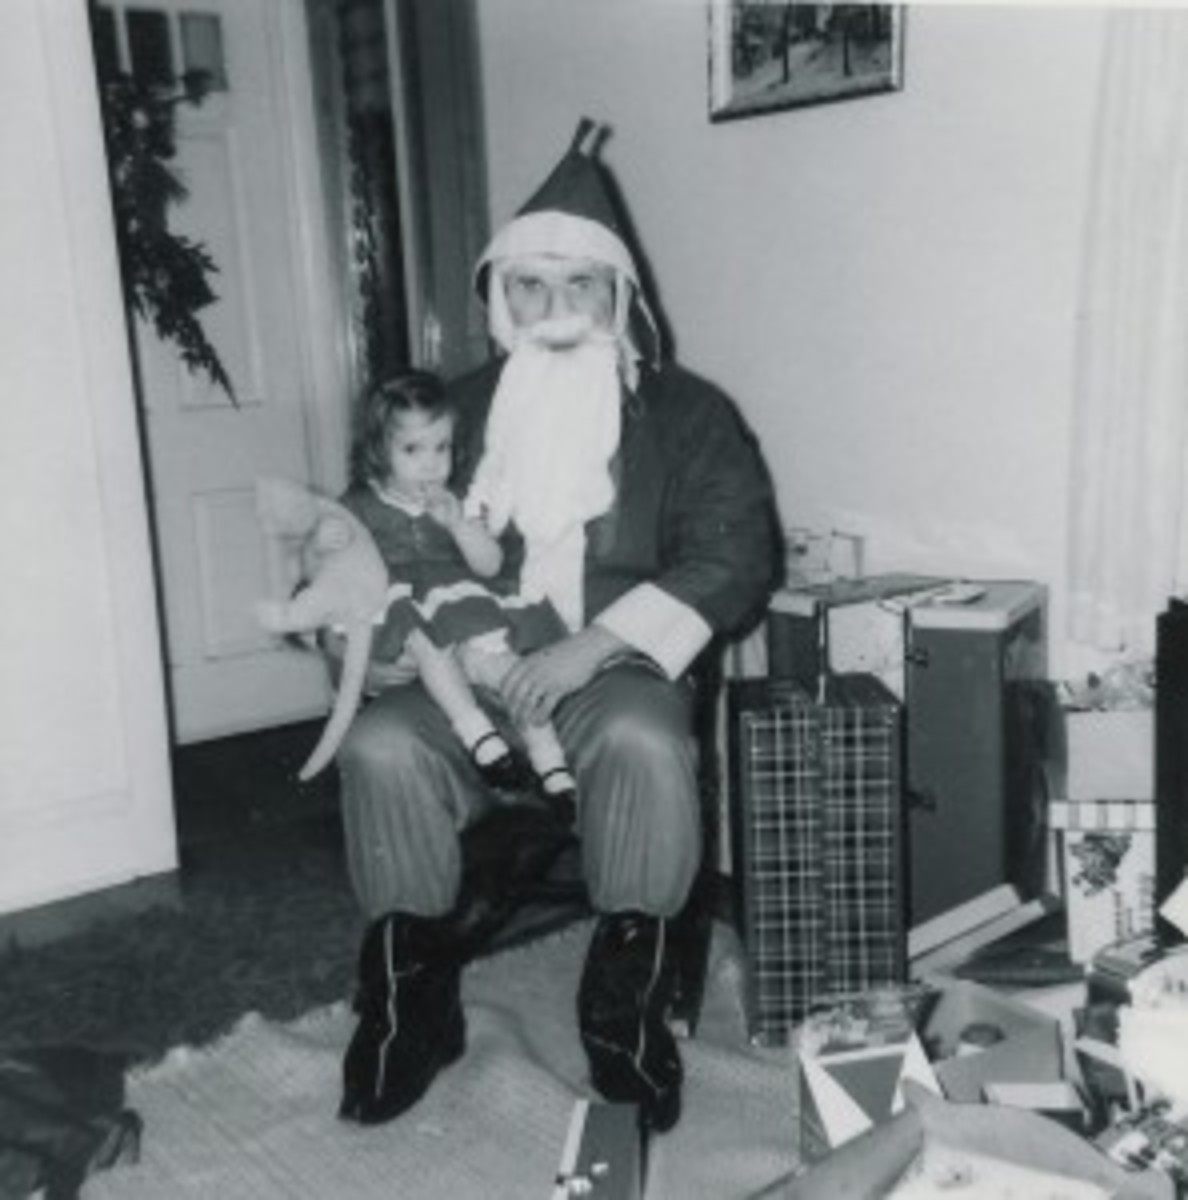 Yes, I still have that stuffed cat in my office, but not sure if that somewhat creepy-looking Santa asked if I wanted to be a writer.